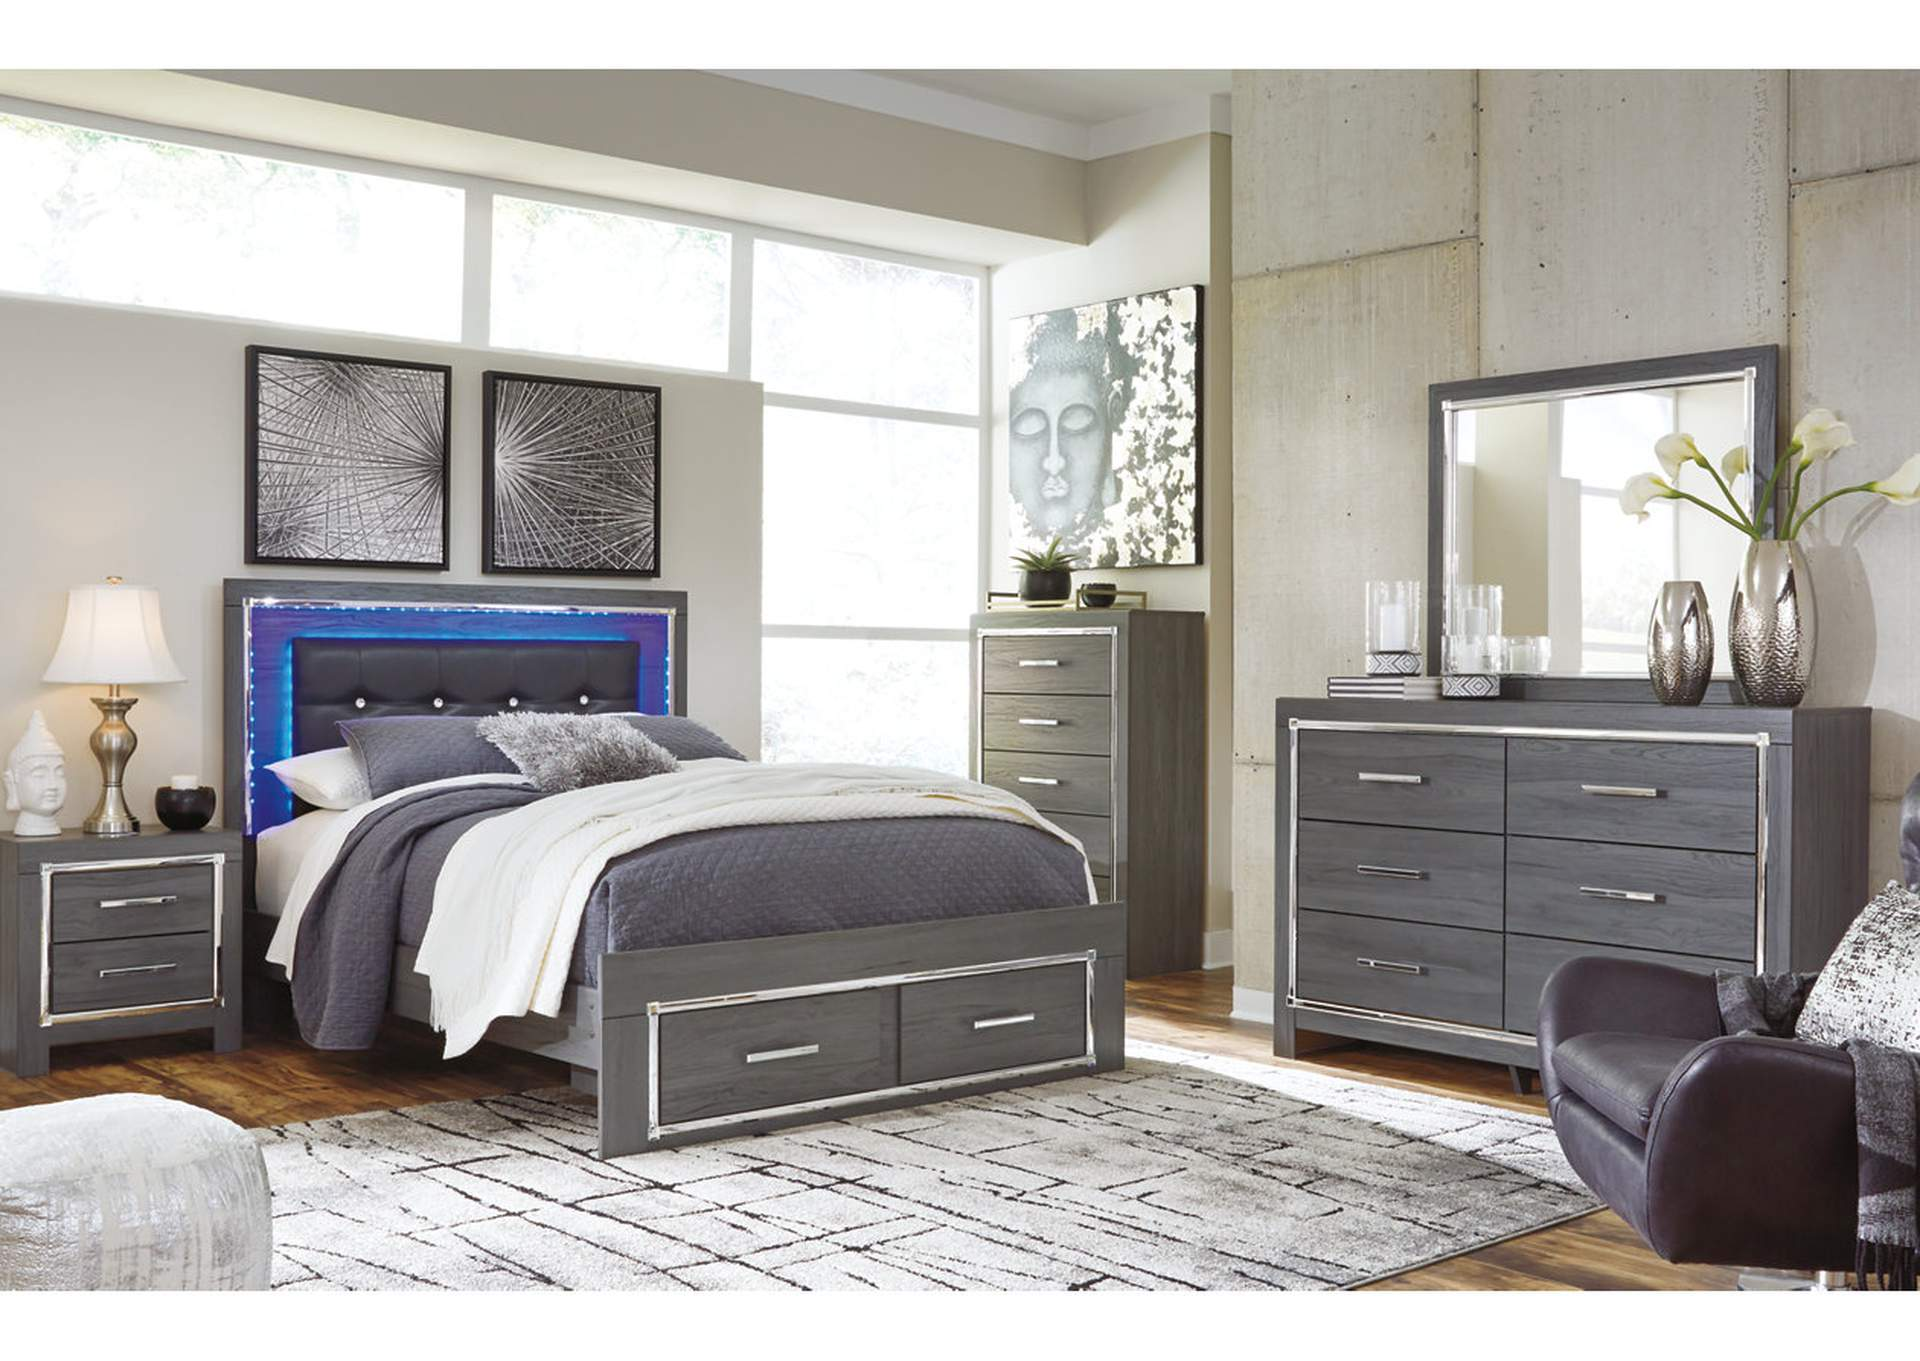 Lodanna Queen Panel Bed with 2 Storage Drawers,Signature Design By Ashley